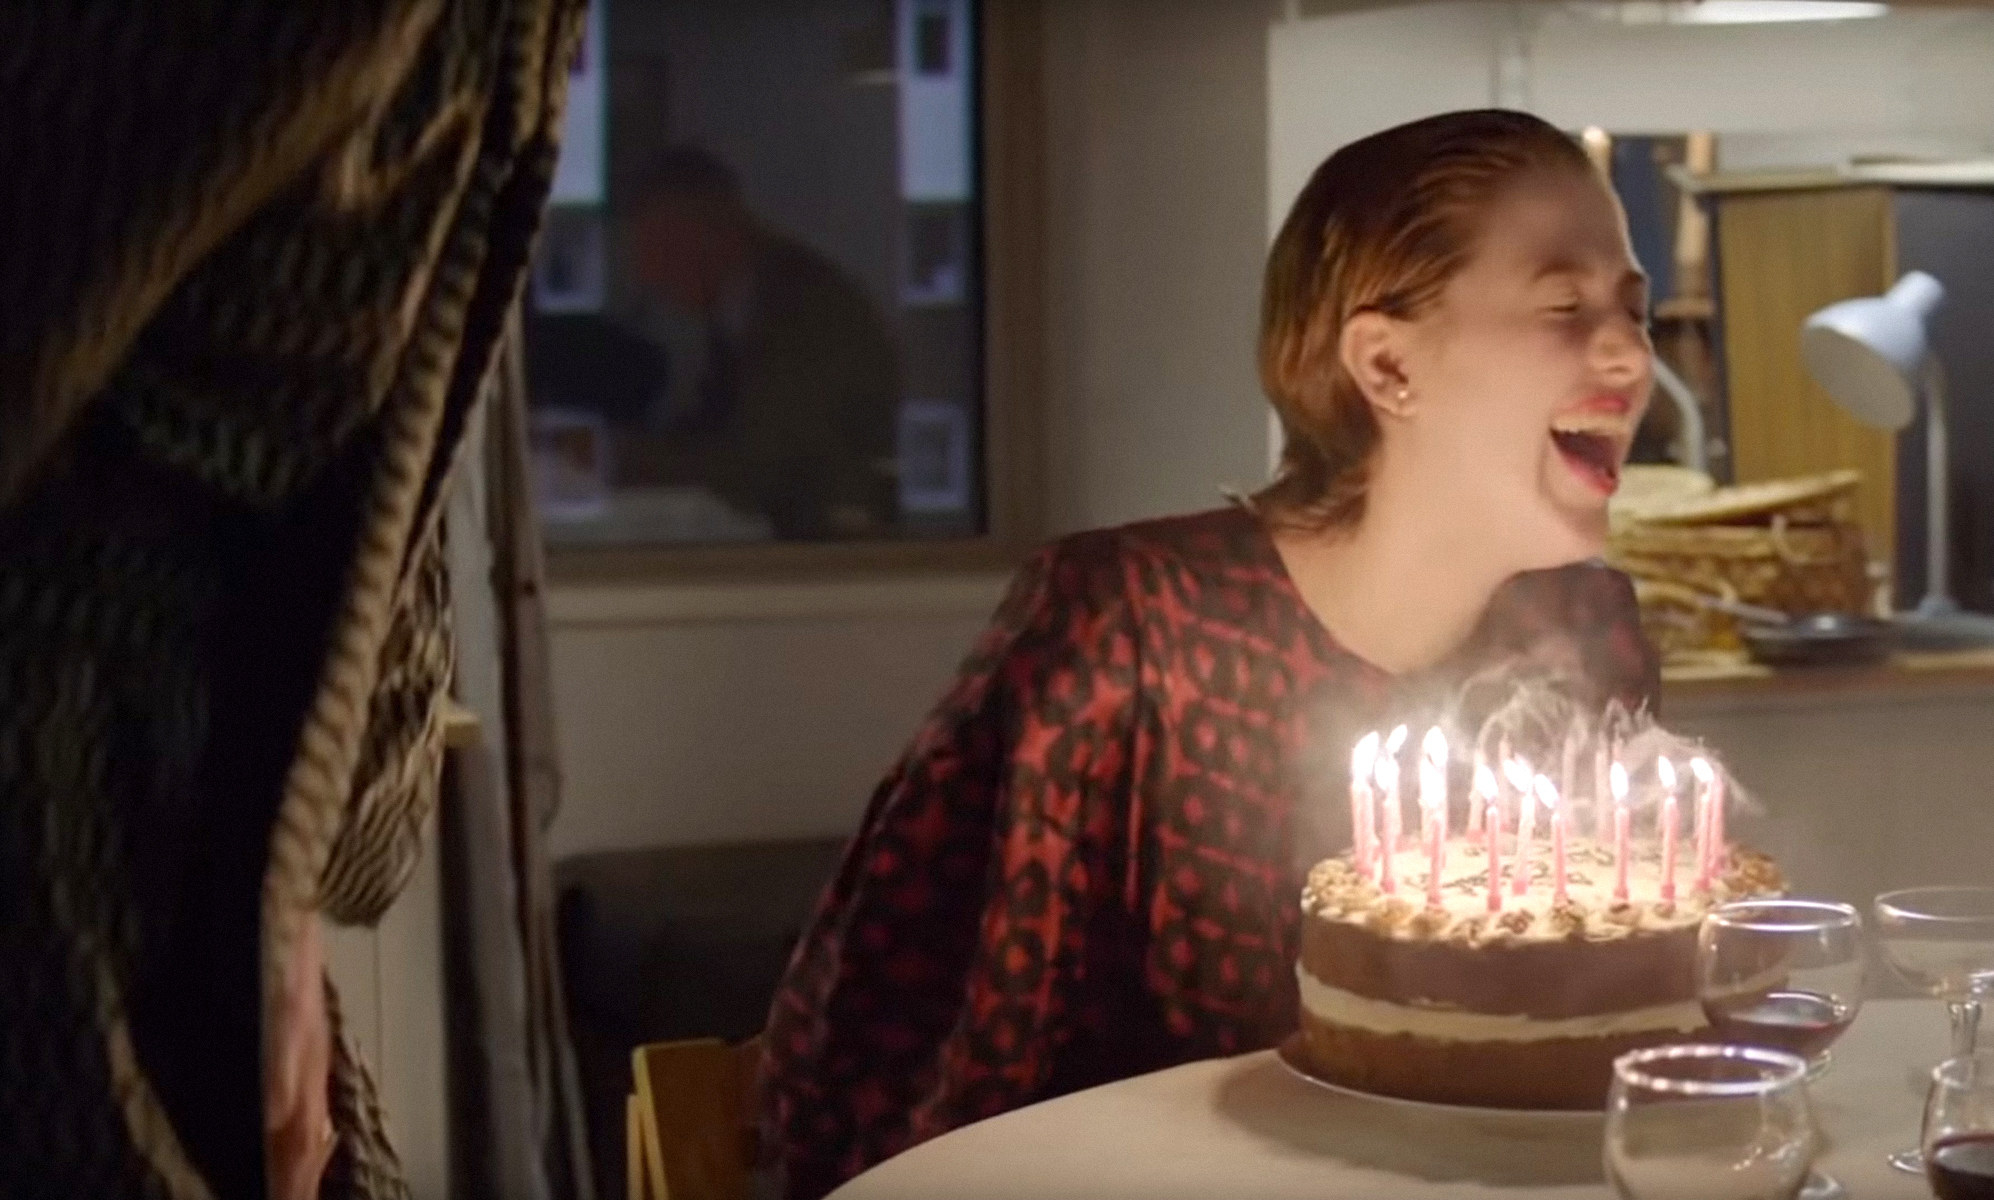 Honor Swinton Byrne laughs with a birthday cake in front of her